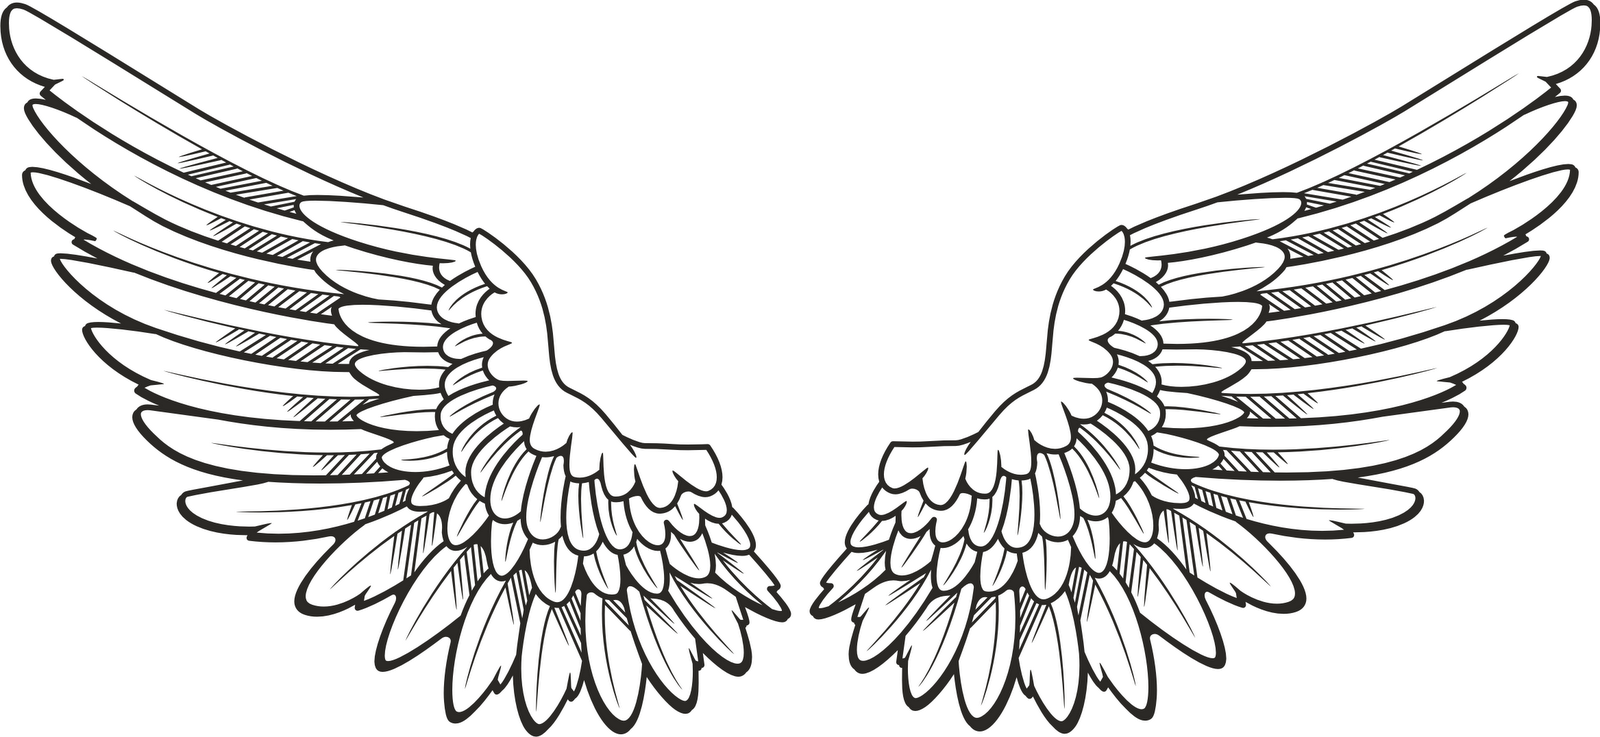 Clip Art Angel Wings Clip Art halo and angel wing clipart kid black white picture